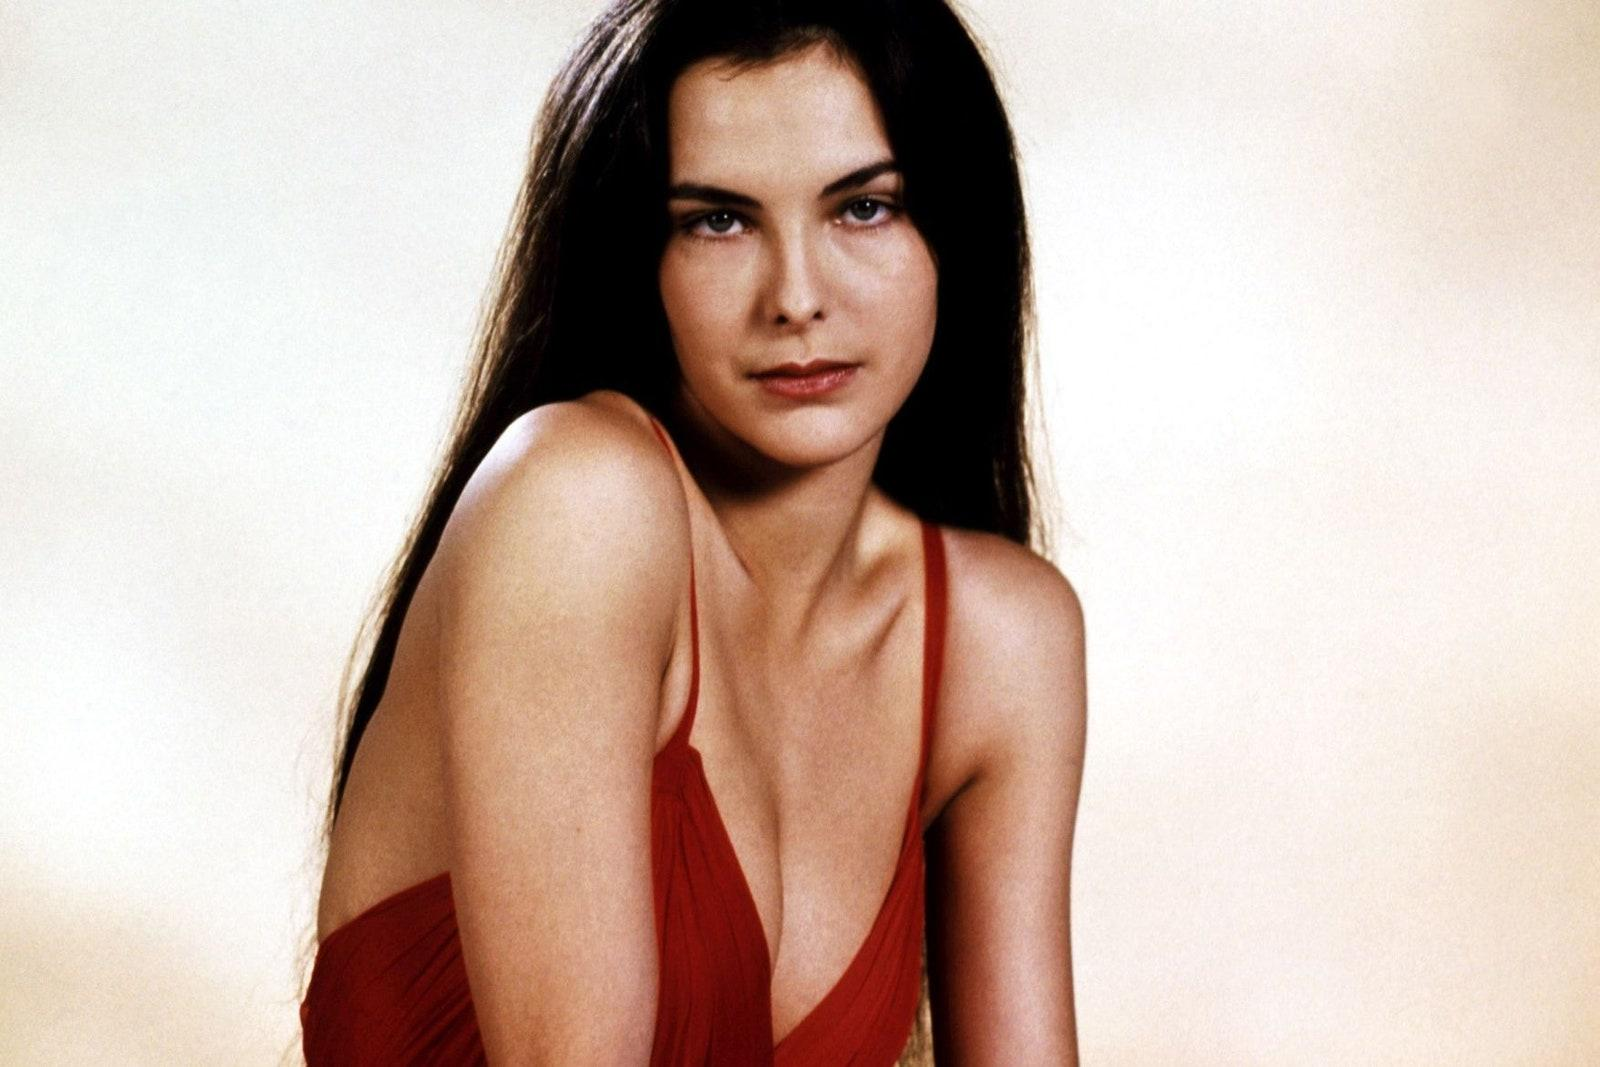 Carole Bouquet (Melina Havelock) / 'For Your Eyes Only'